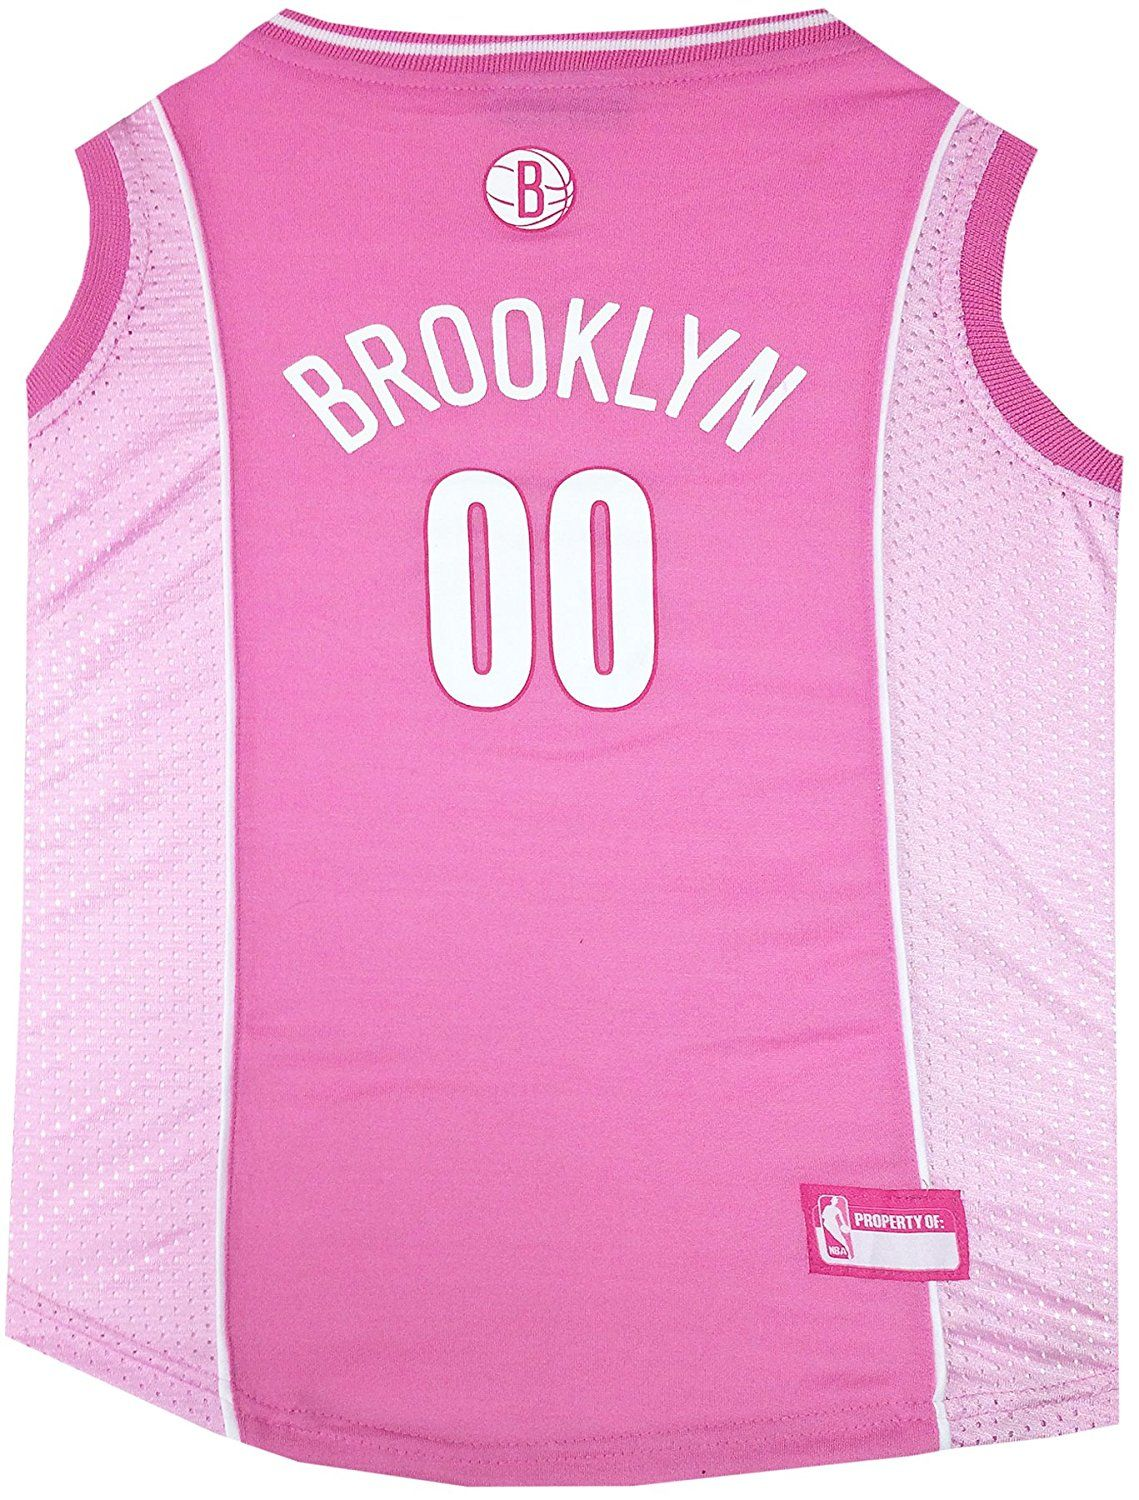 Pets First Nba Brooklyn Nets Jersey Want Additional Info Click On The Image This Is An Affiliate Link And I R Dog Jersey Dog Sports Jersey Brooklyn Nets